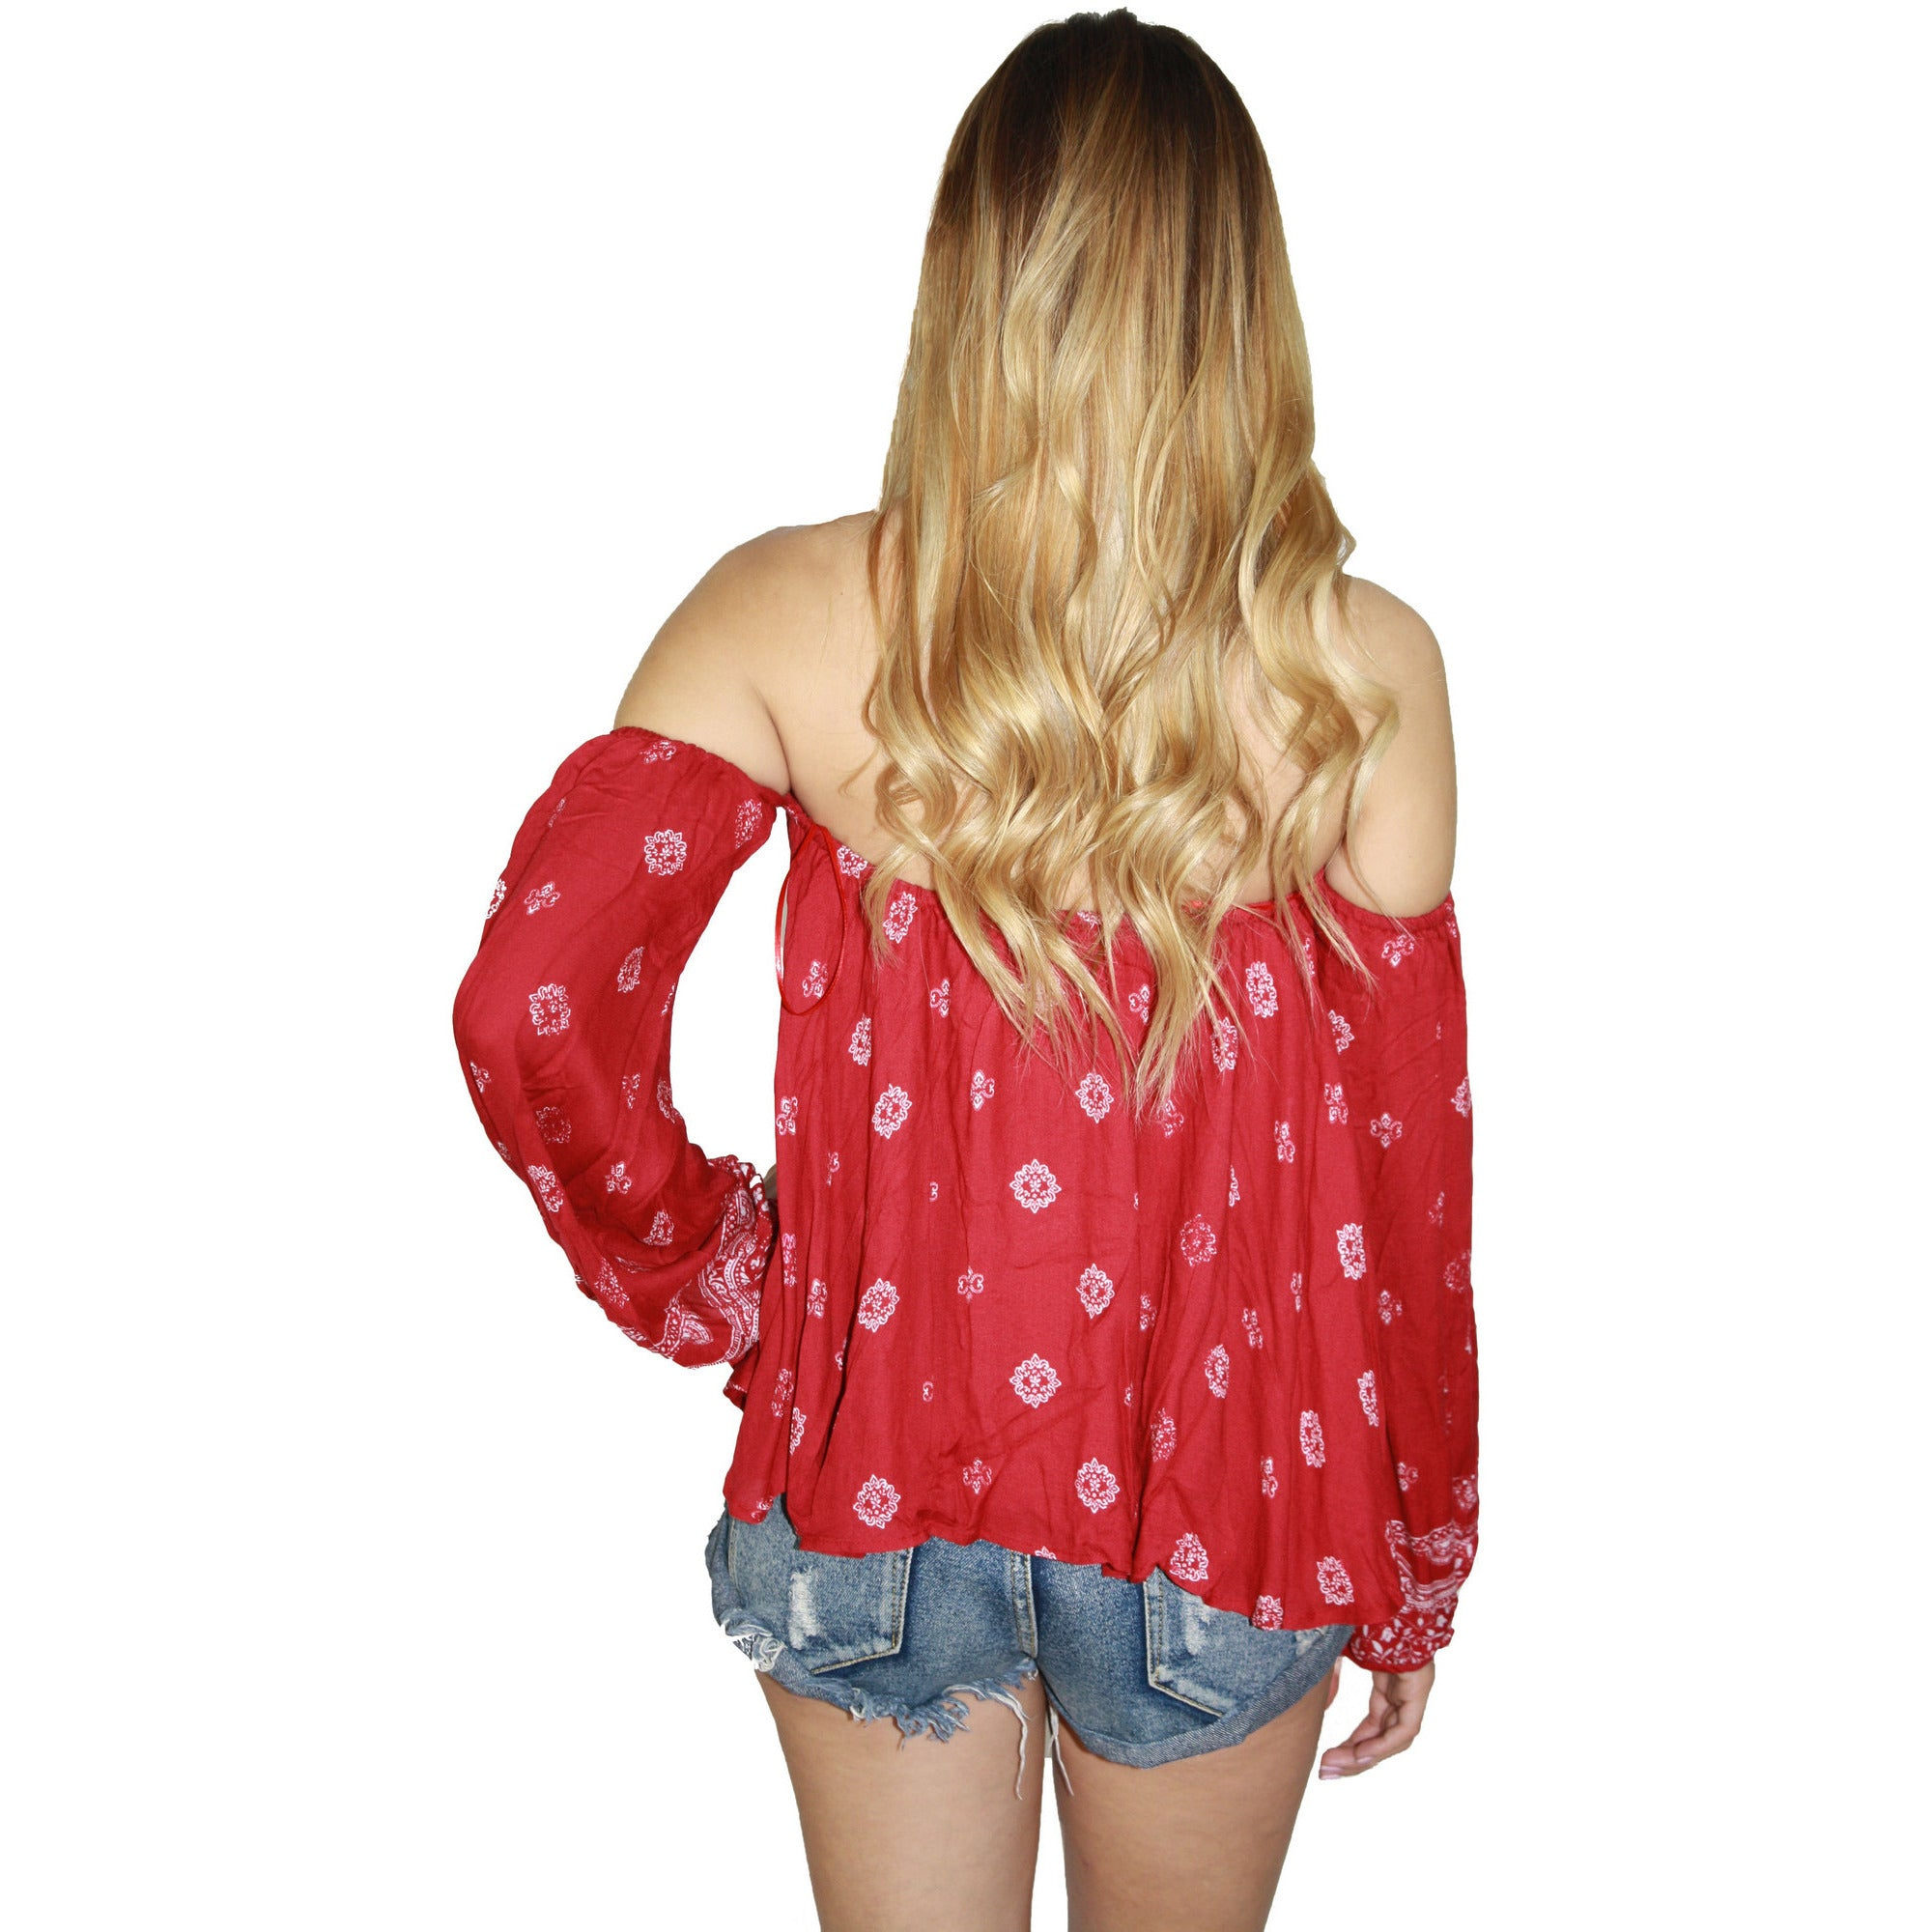 Fuego Crop Top in Red Robe Print